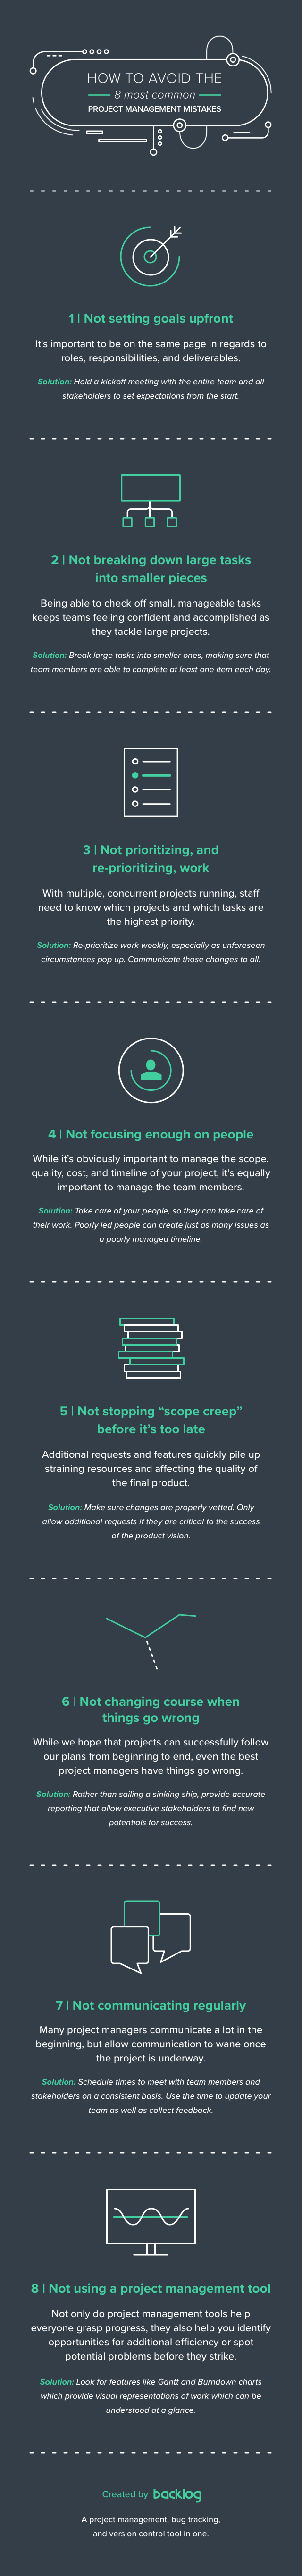 Infographic How to avoid the 8 most commong project management mistakes